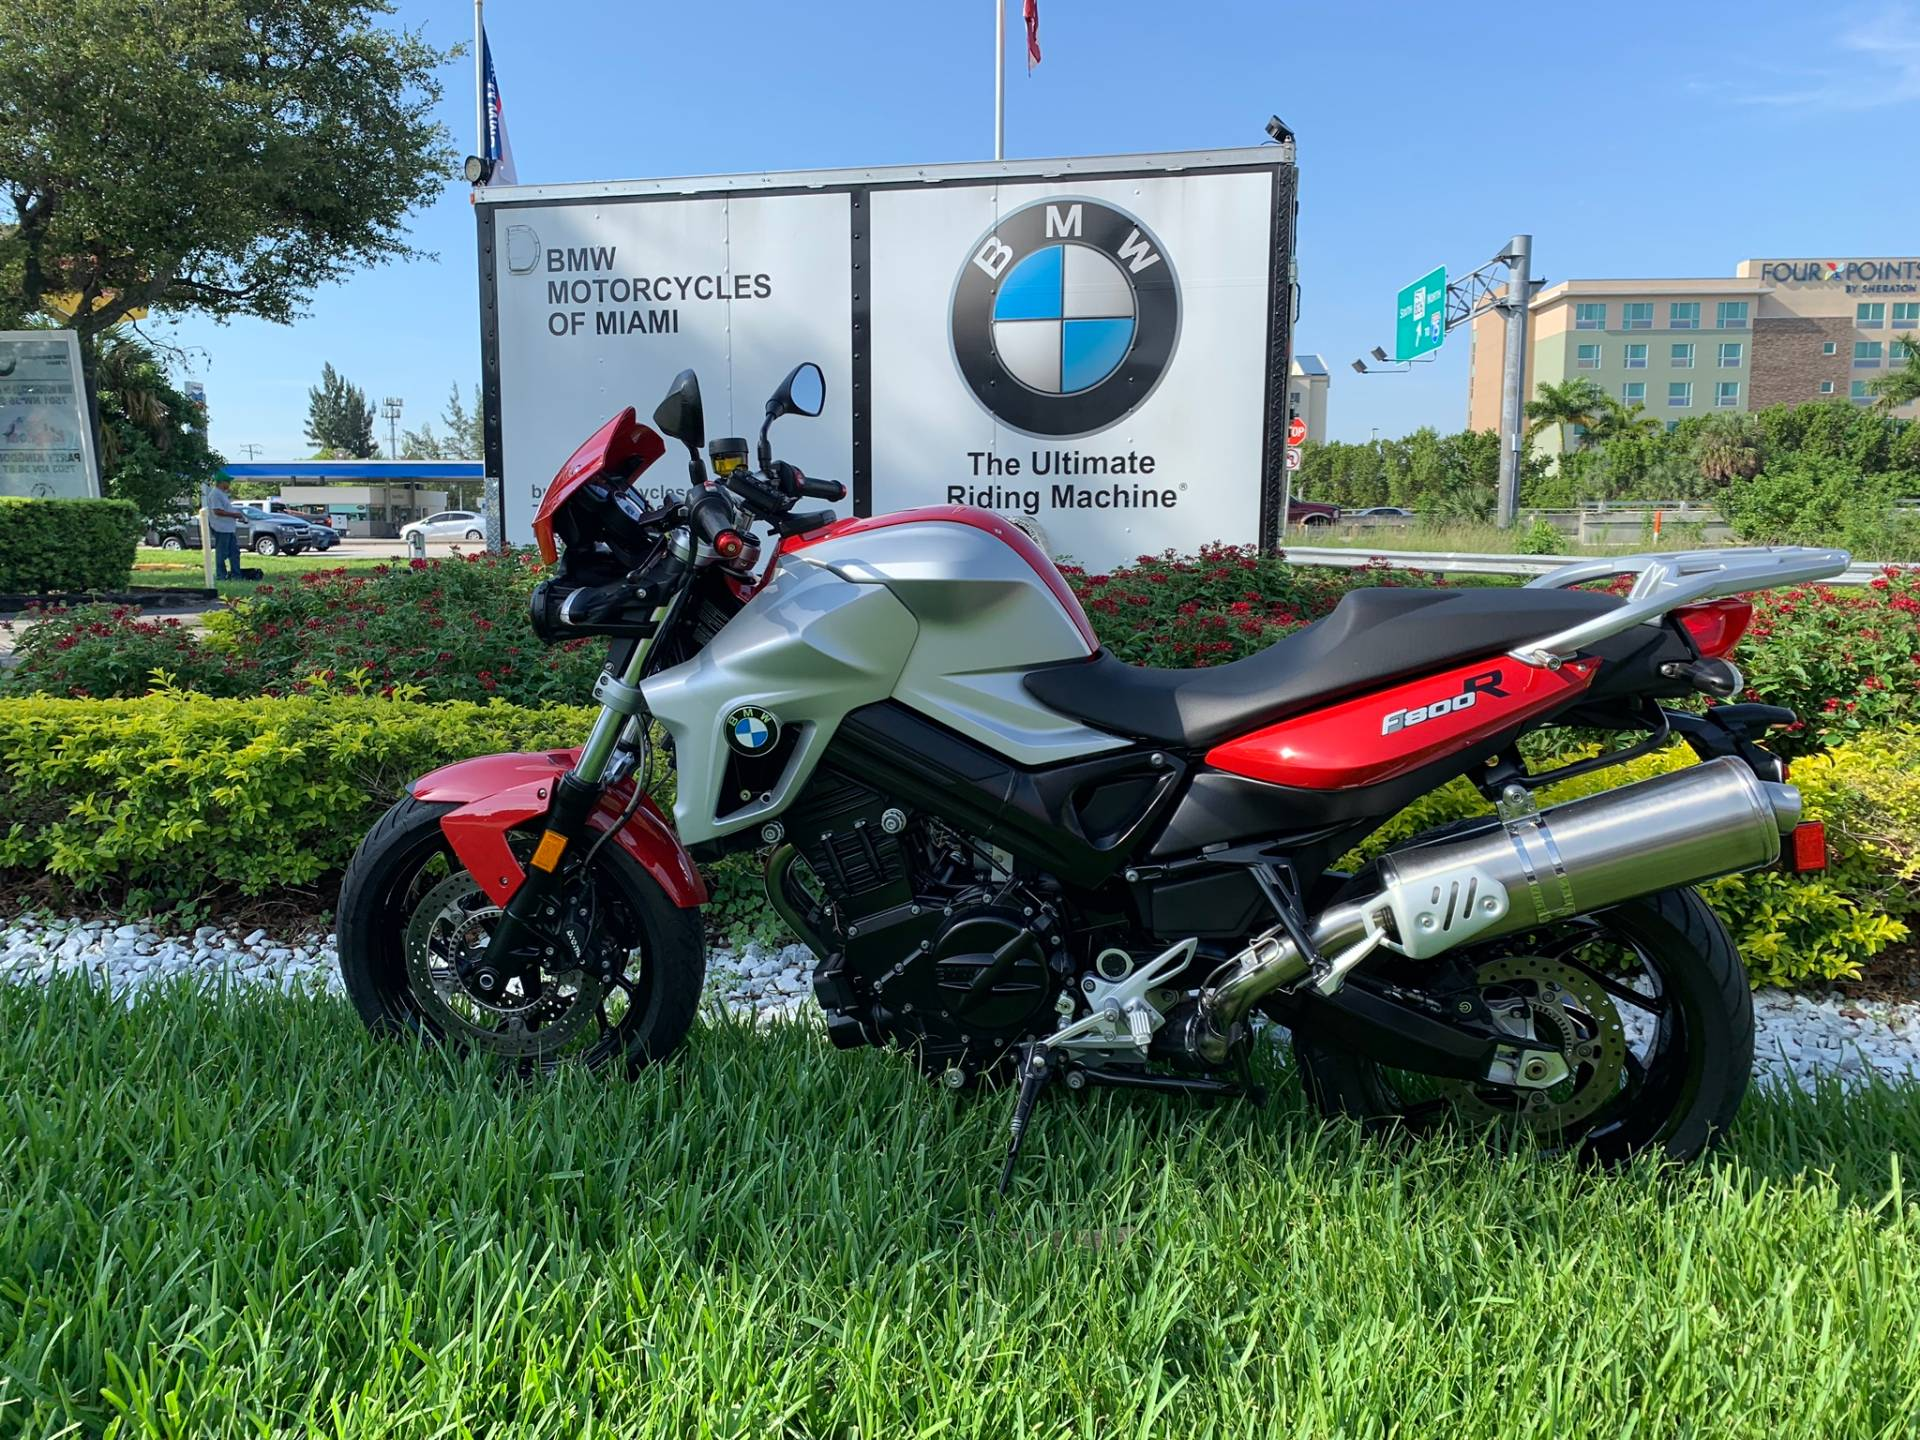 Used 2012 BMW F 800 R for sale, BMW F 800R for sale, BMW Motorcycle F800R, used BMW Roaster, Naked, 800, BMW. BMW Motorcycles of Miami, Motorcycles of Miami, Motorcycles Miami, New Motorcycles, Used Motorcycles, pre-owned. #BMWMotorcyclesOfMiami #MotorcyclesOfMiami. - Photo 7